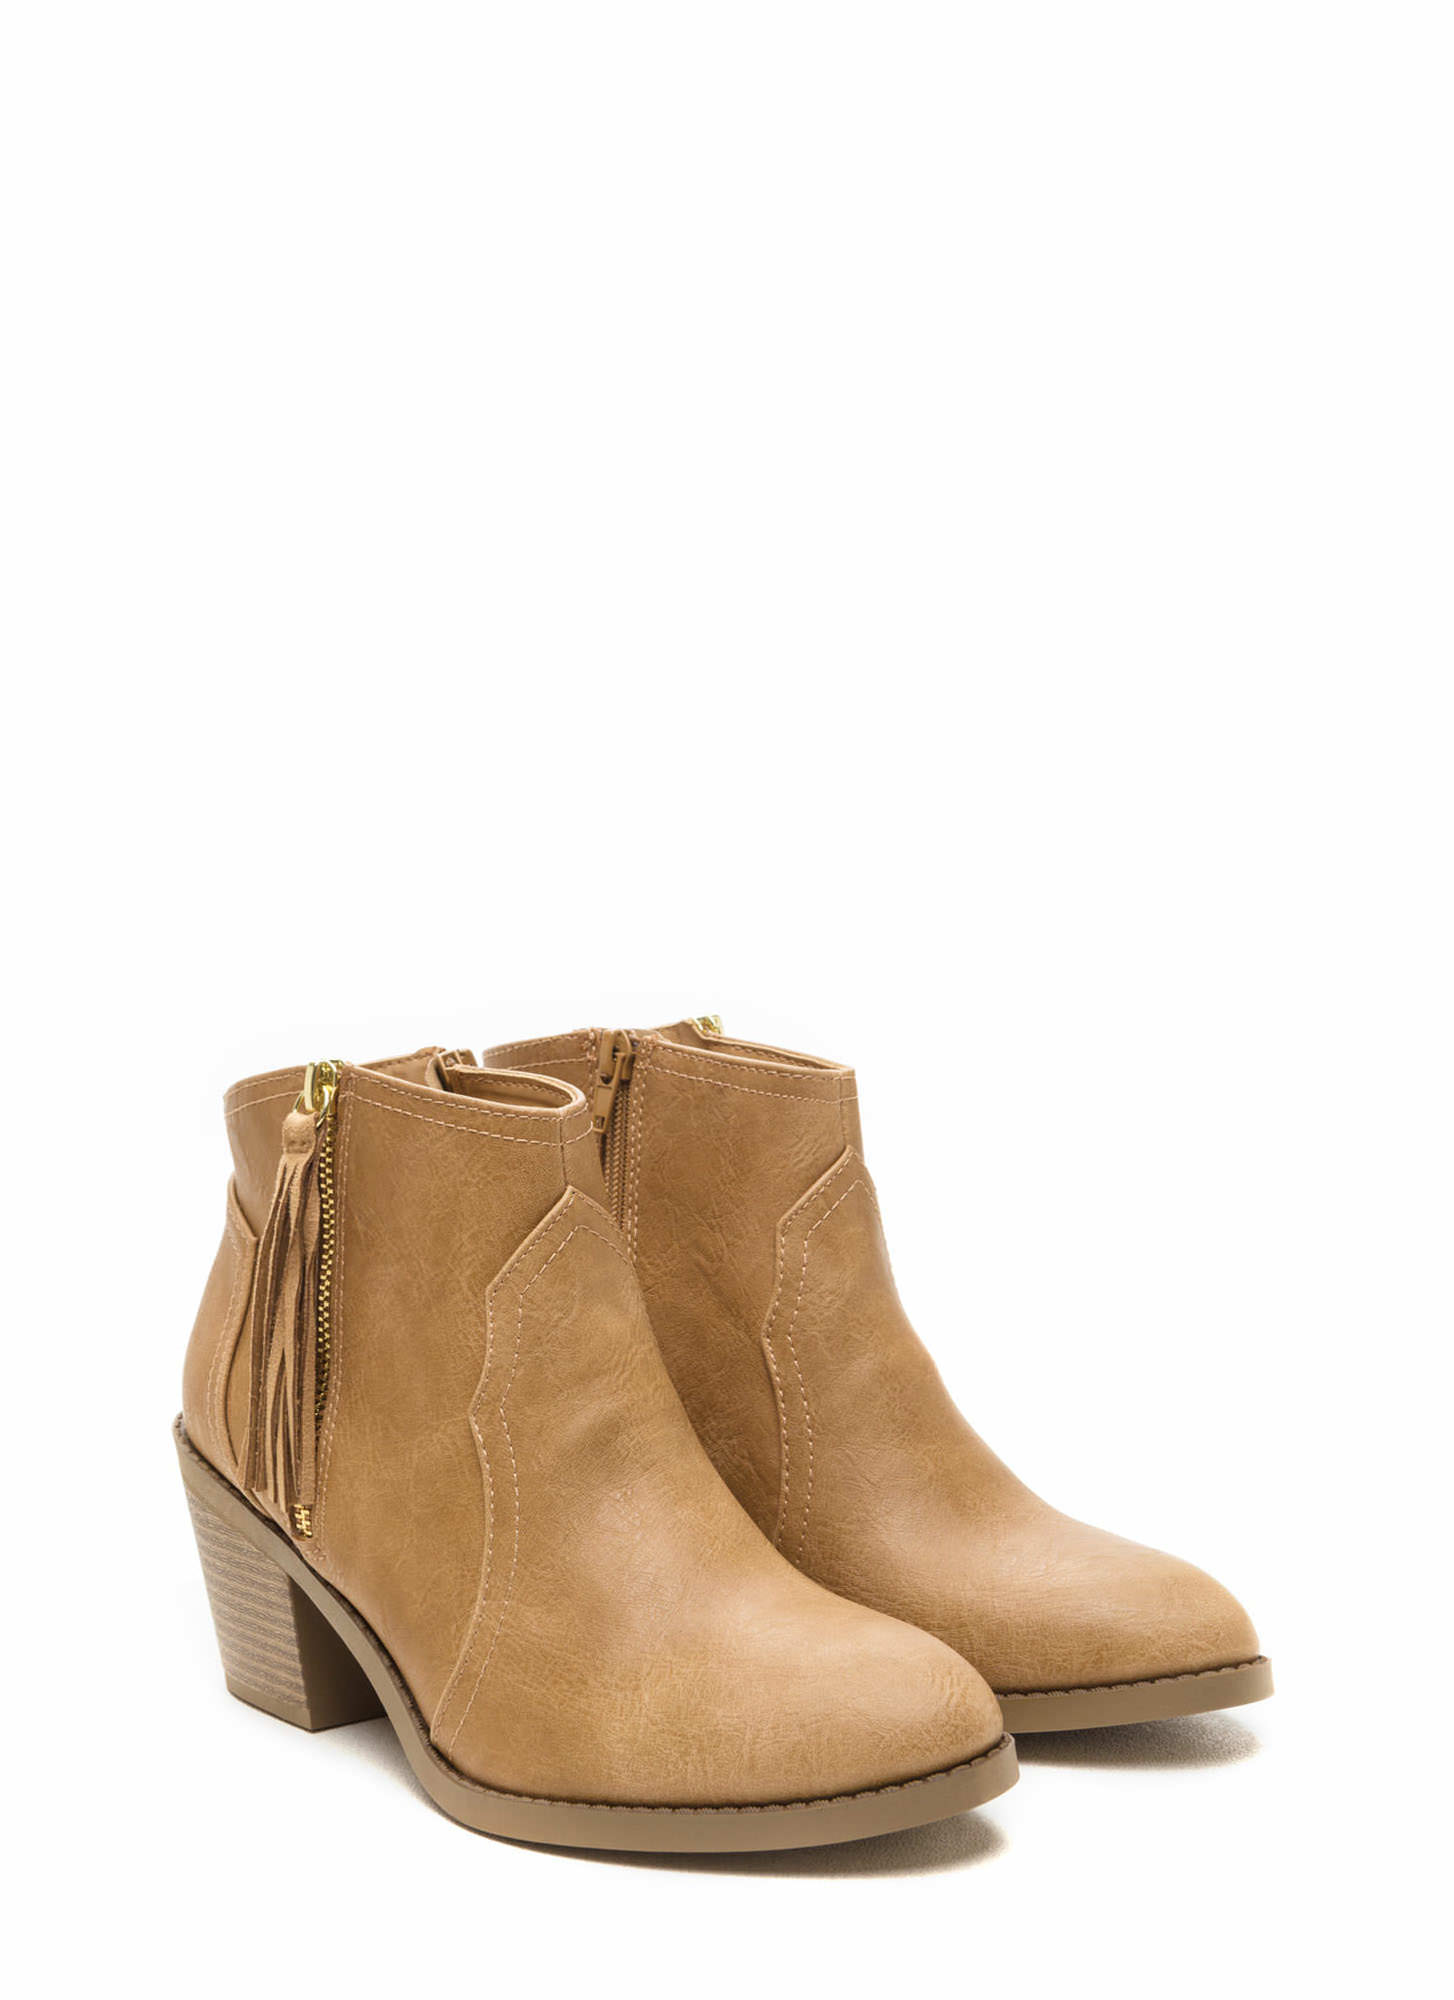 Cowgirl Chic Chunky Tasseled Booties BLONDE